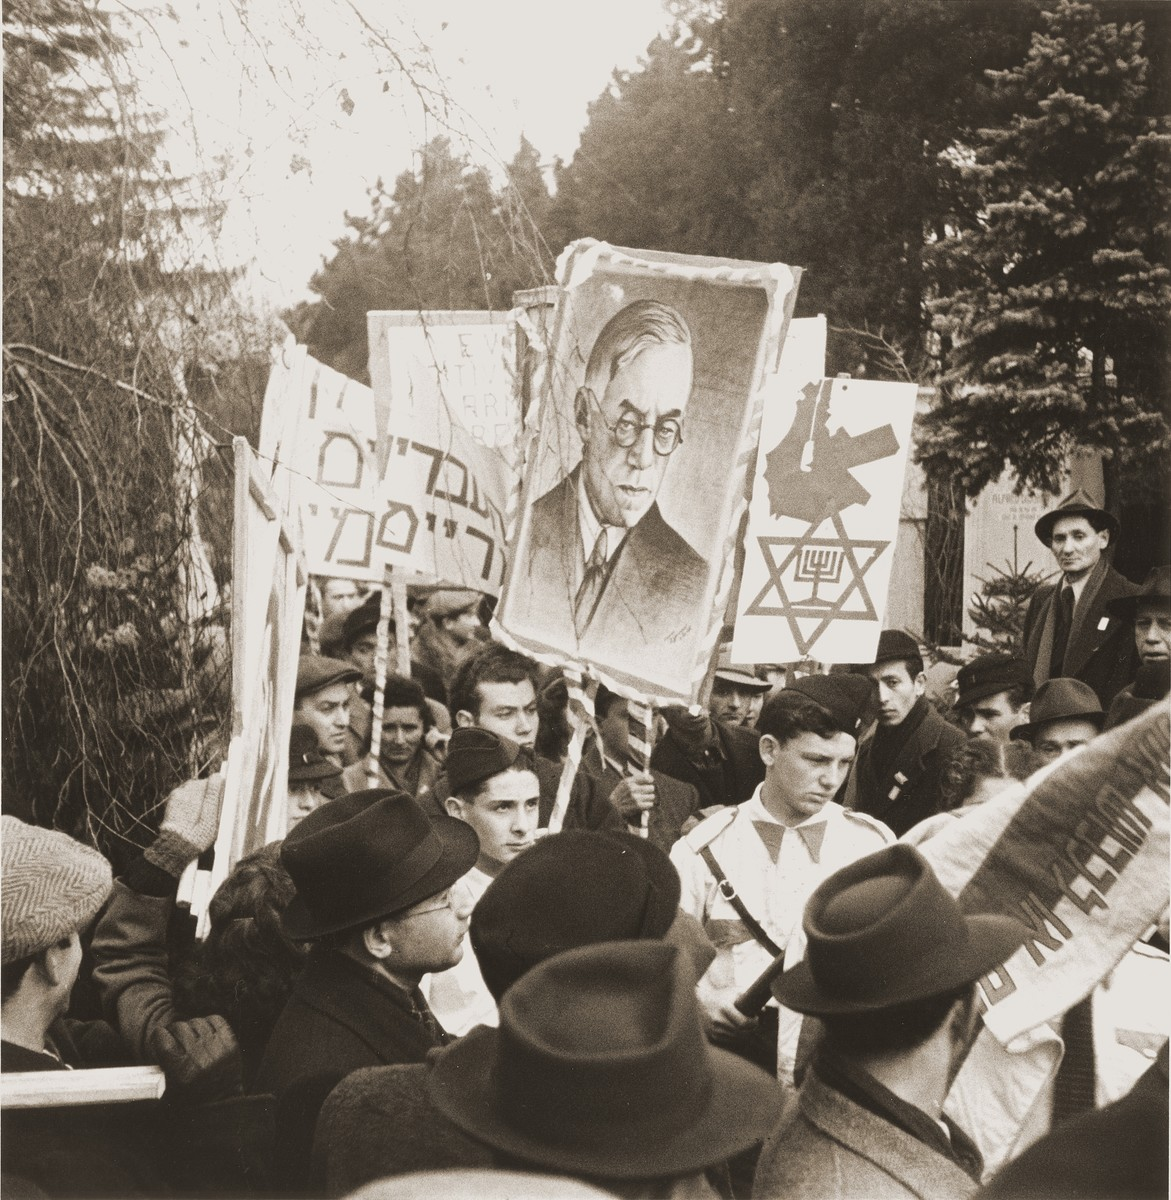 Members of the Betar Zionist youth movement demonstrate against British policy in Palestine at the tomb of Theodor Herzl in the Jewish cemetary in Vienna.    The demonstration was timed to coincide with the visit of the United Nations Special Commission on Palestine to Vienna.